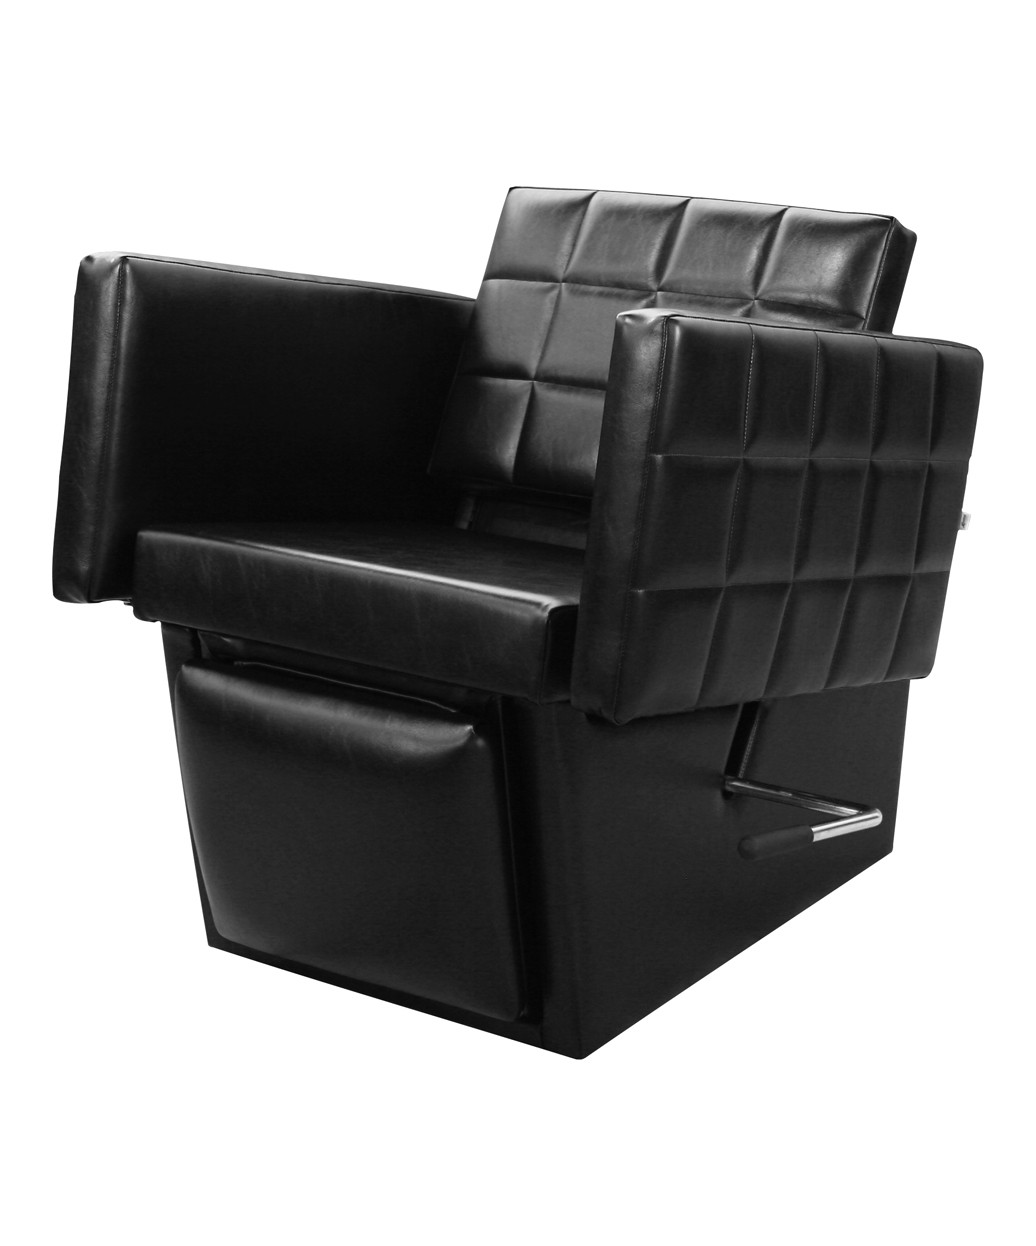 68ES Nouveau Eletric Shampoo Chair with Kick Out Legrest